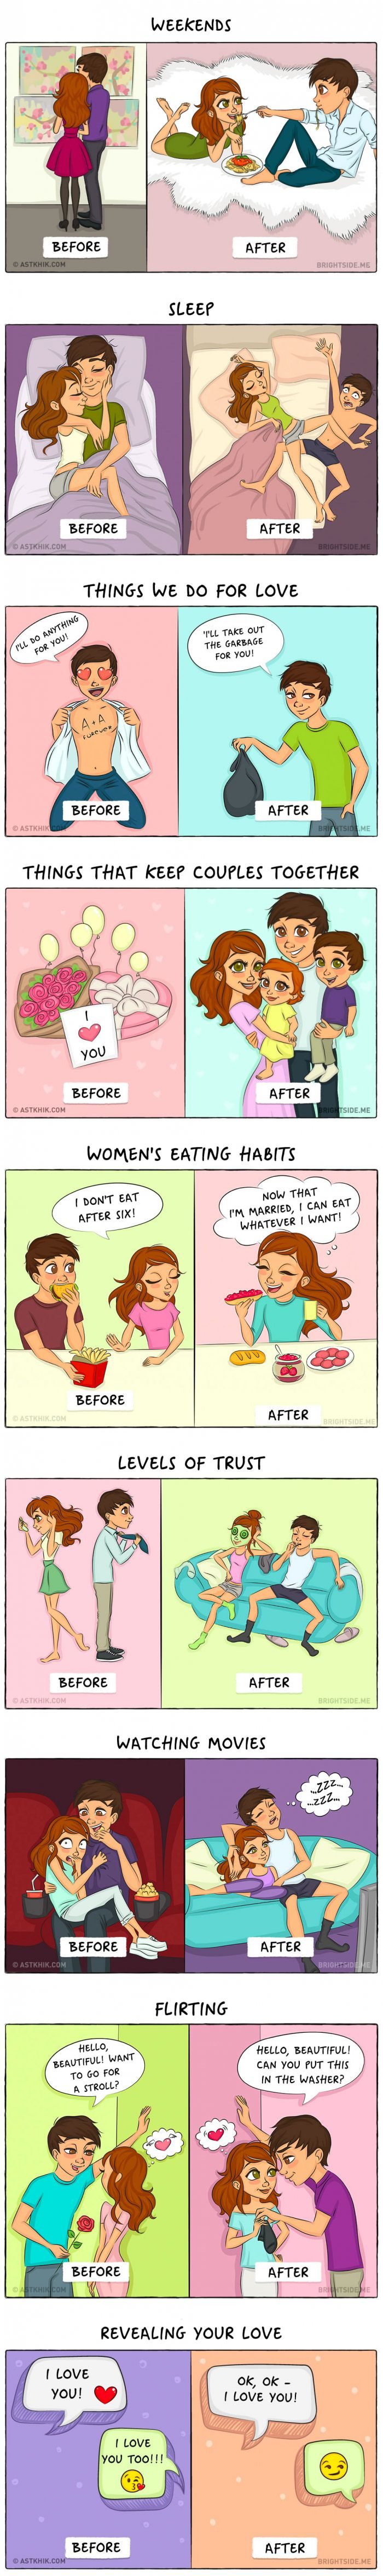 Life before and after marriage - 9GAG